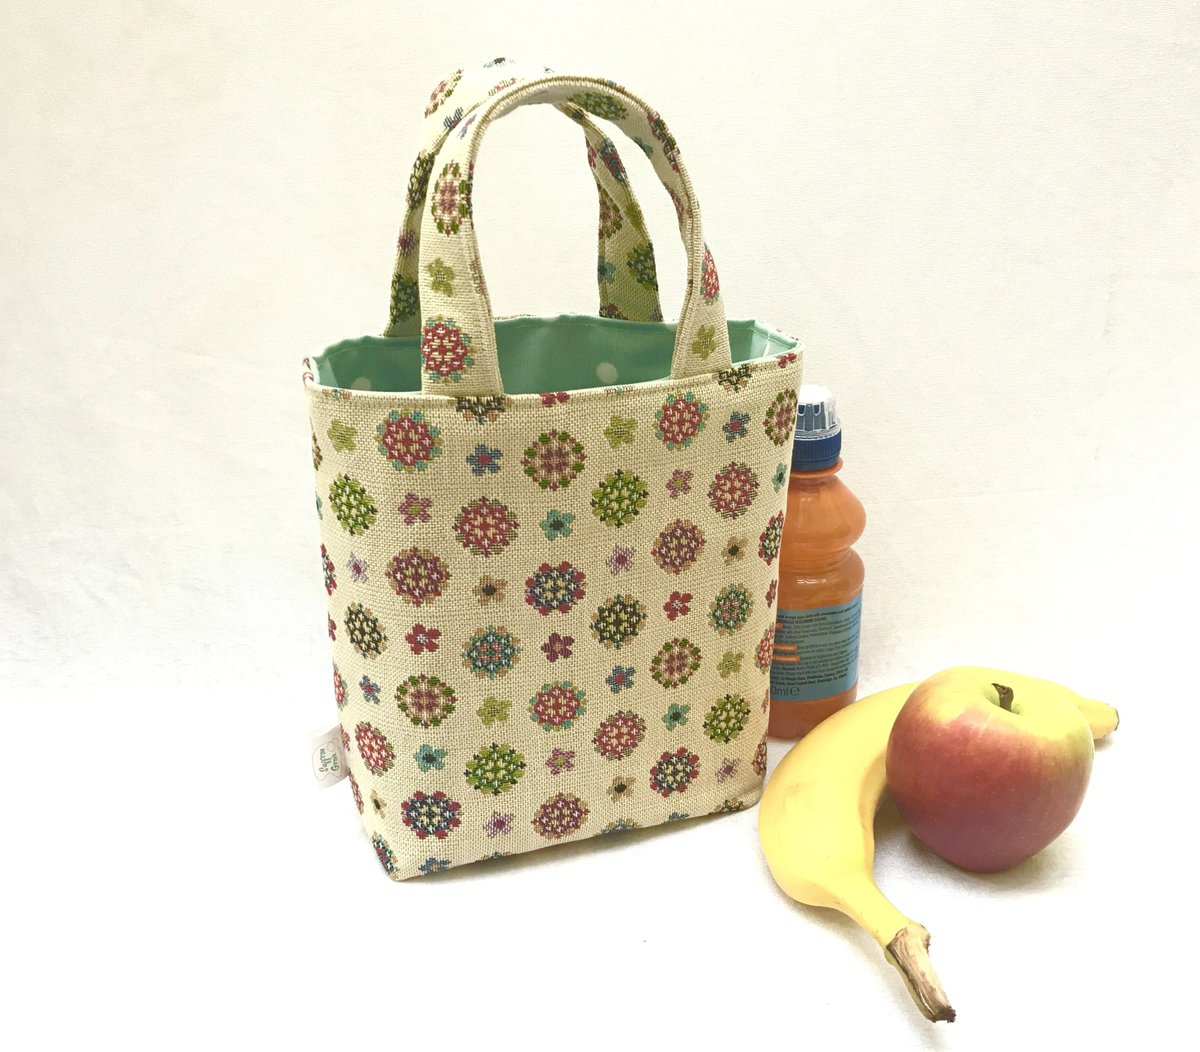 Good morning #earlybiz, don't forget your lunch today.  These and more available at  http://www. saffrongrove.com     #lunchbags #dinkytotes #londonislovinit #ukcraft #madeincornwall<br>http://pic.twitter.com/oVH1cEZJCQ